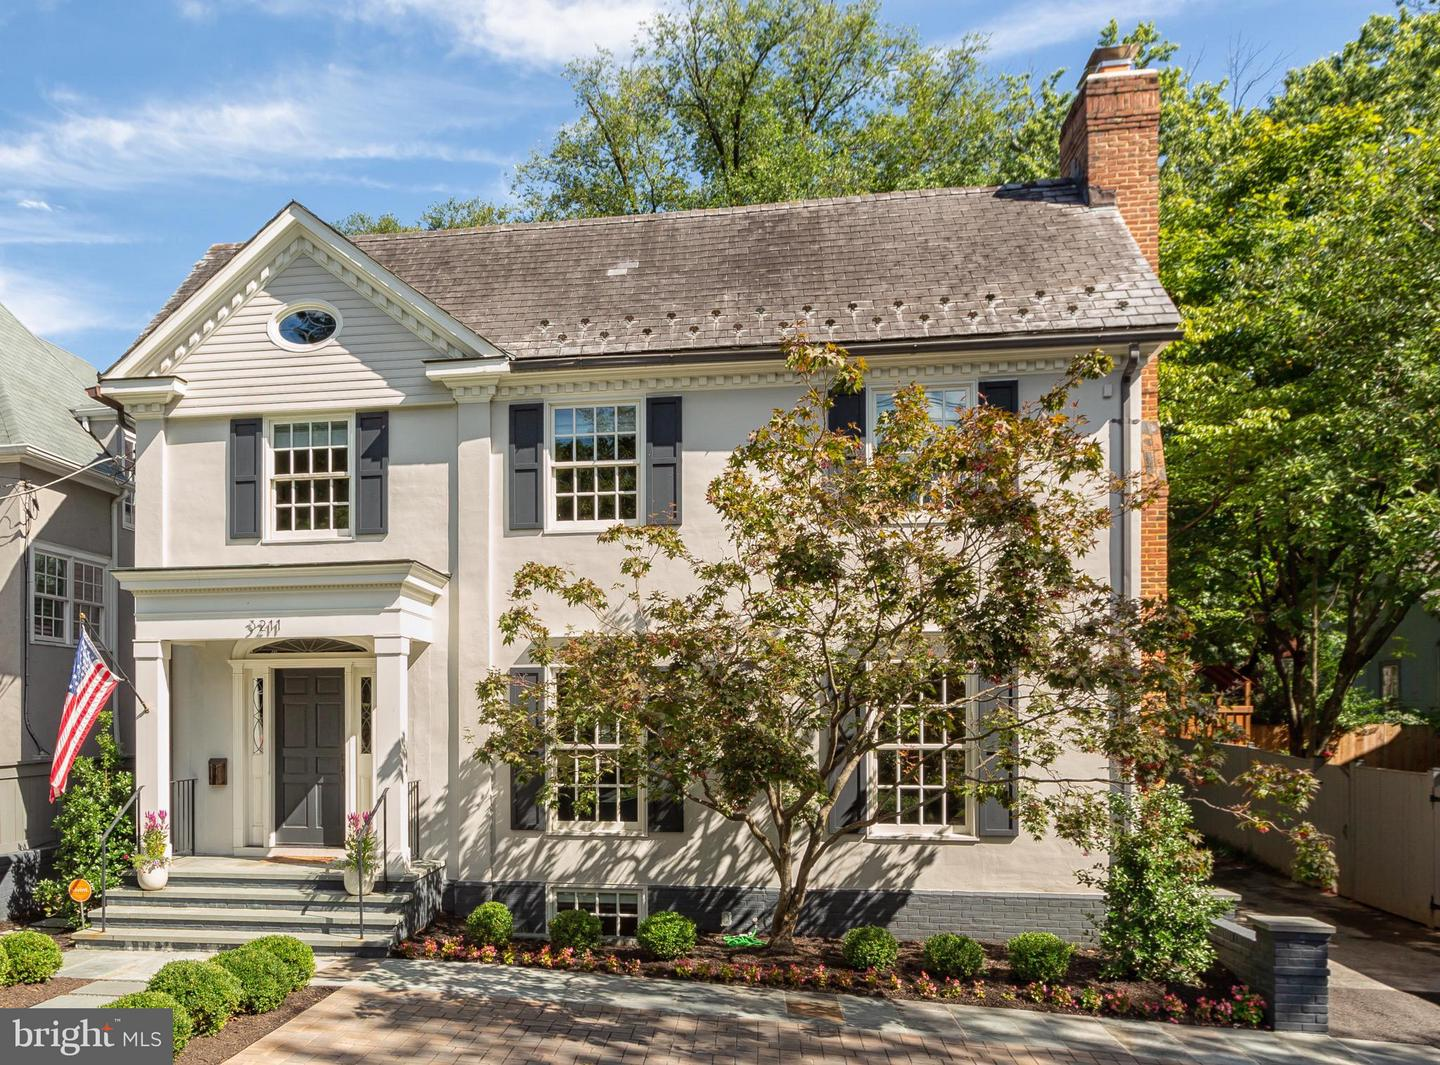 Single Family for Sale at 3211 Foxhall Rd NW Washington, District Of Columbia 20016 United States